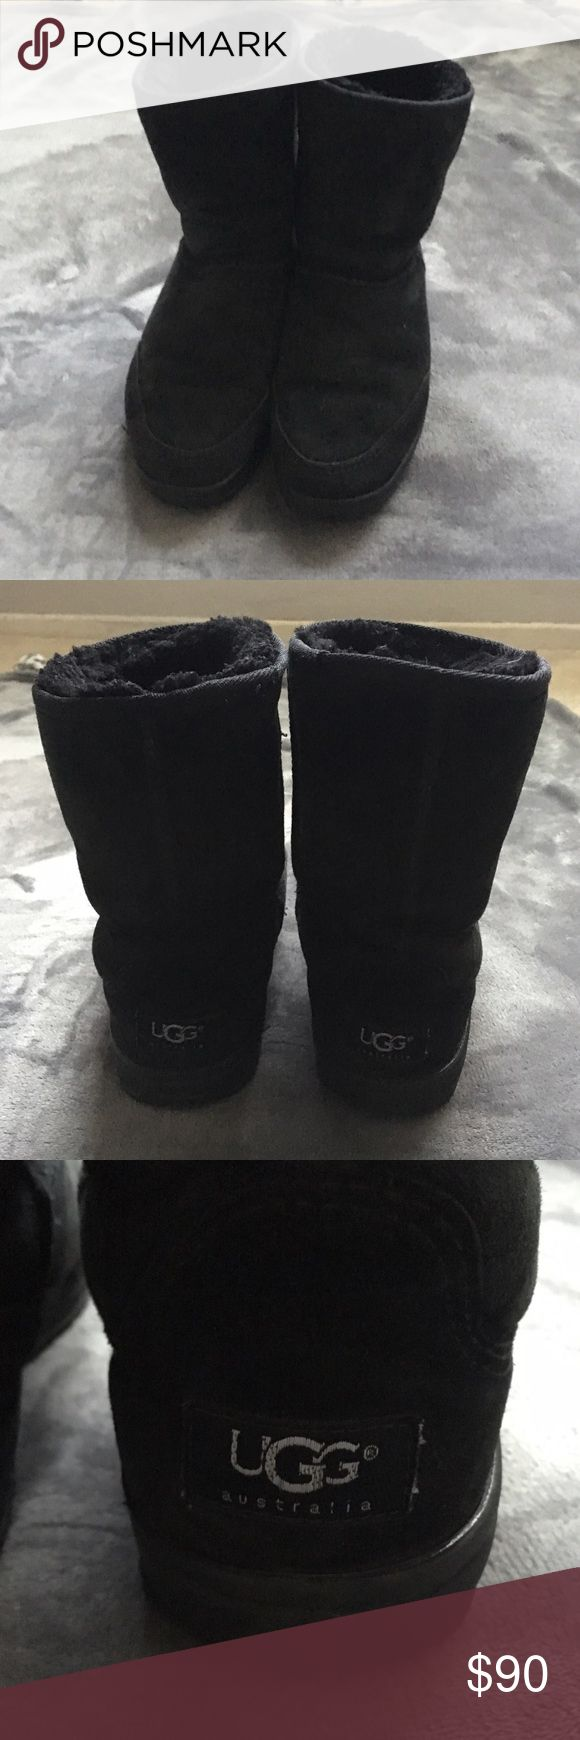 Black Ugg Boots Black Ugg Boots, flaws are pictured they are still in great condition but have normal signs of wear and tear, the bottoms of the boots are in great condition and show that they still have plenty of life left UGG Shoes Winter & Rain Boots